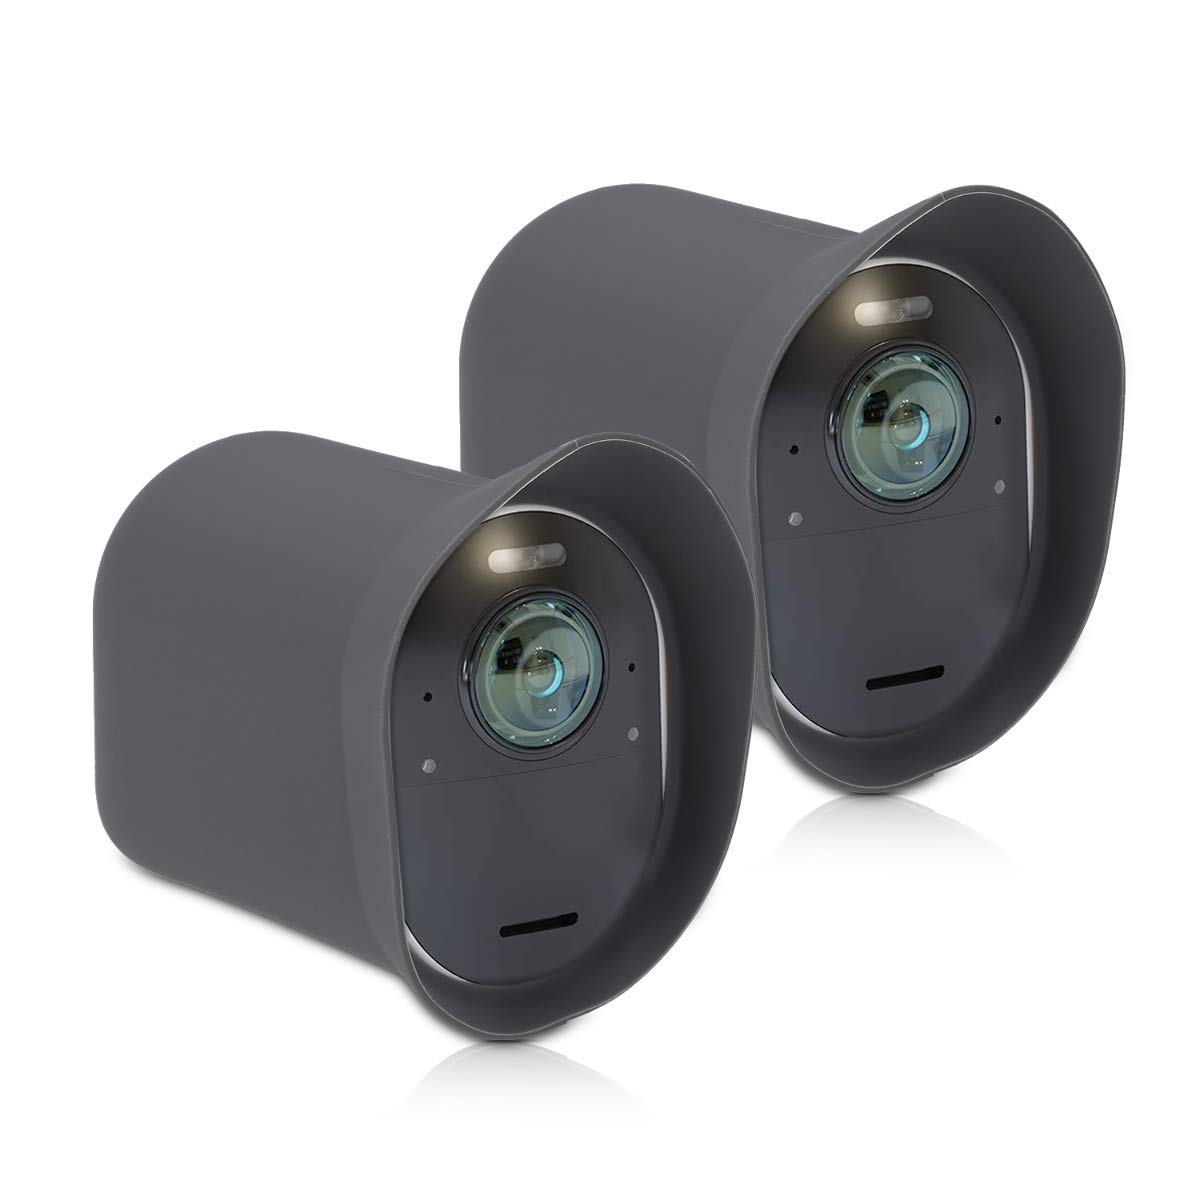 kwmobile 2x Skin for Arlo Ultra Black Silicone Security Camera Case Outdoor CCTV Protective Cover